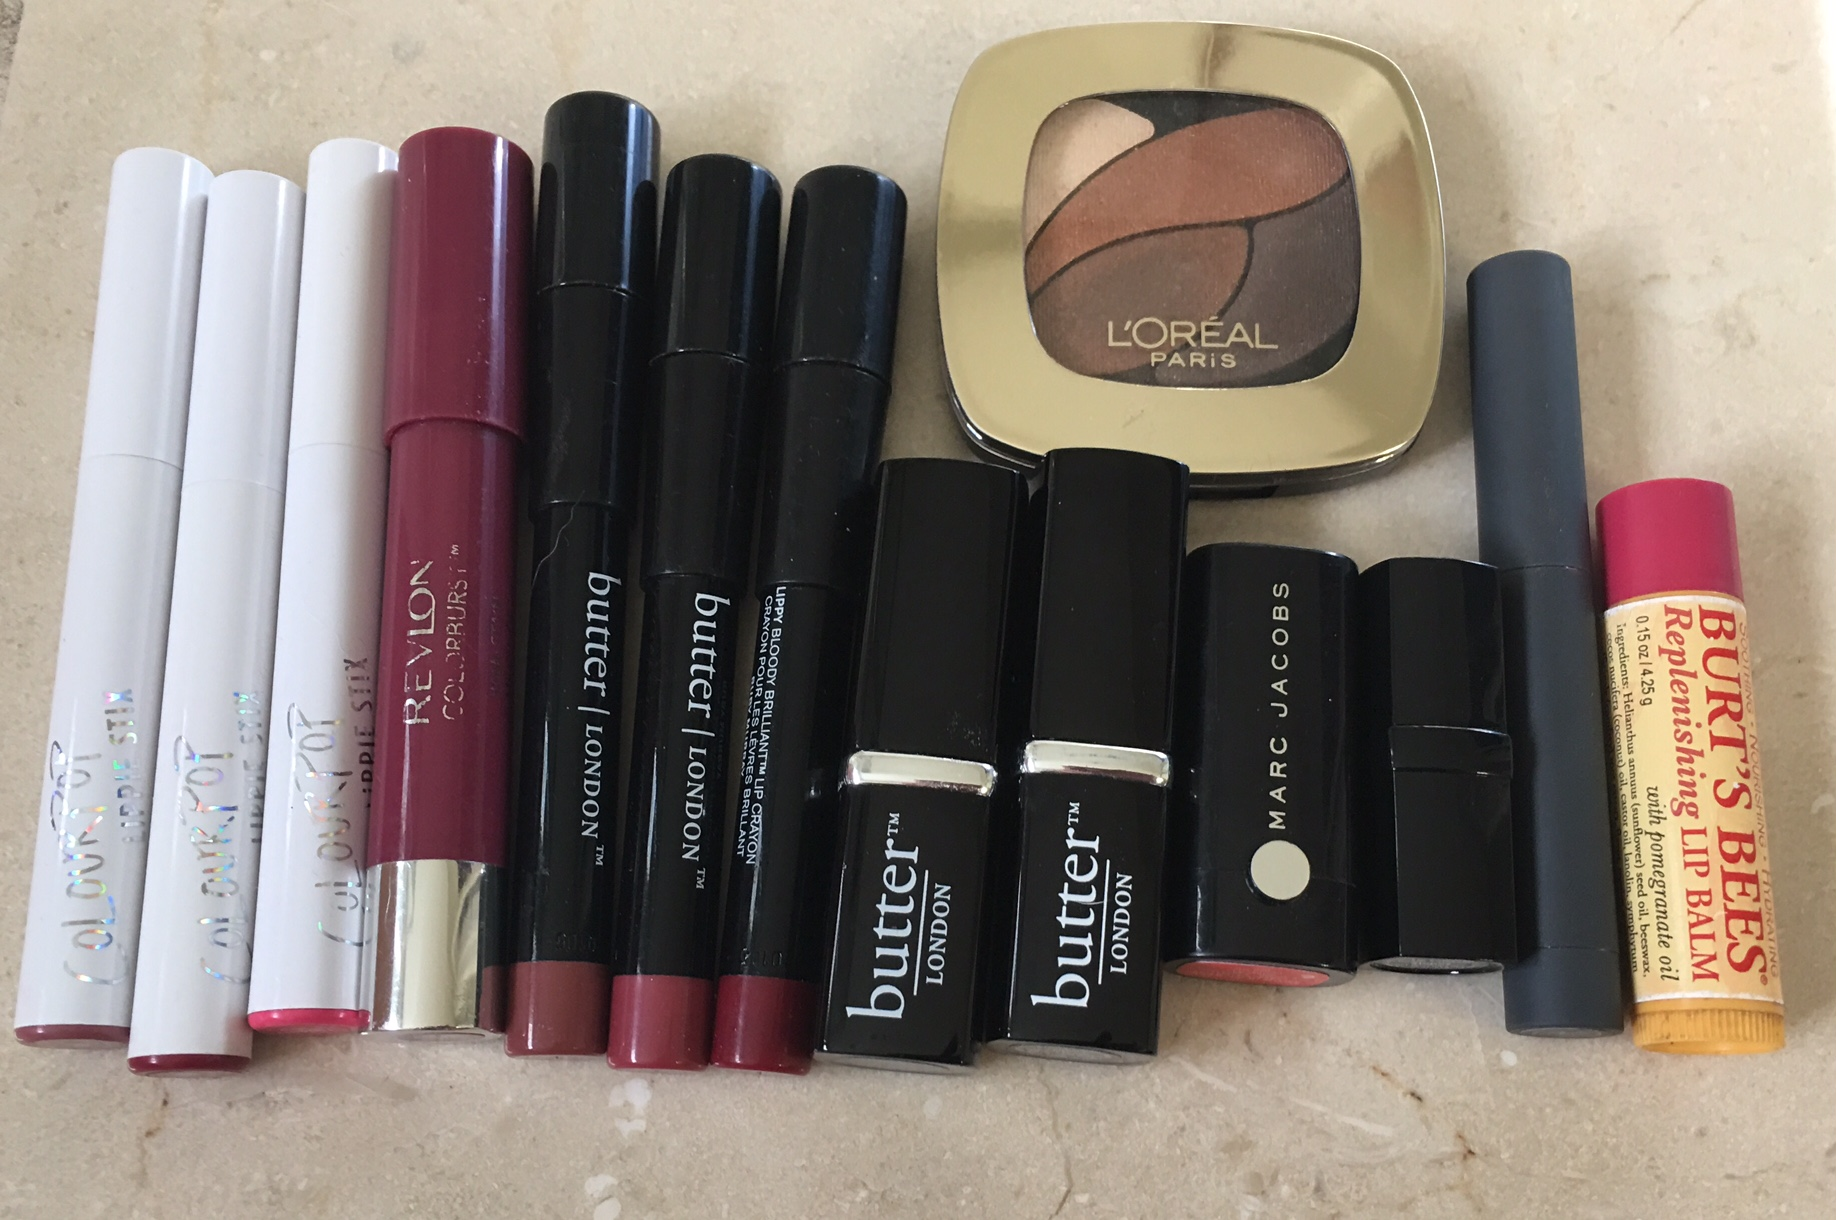 2017_02_empties_notforme_makeup.jpg